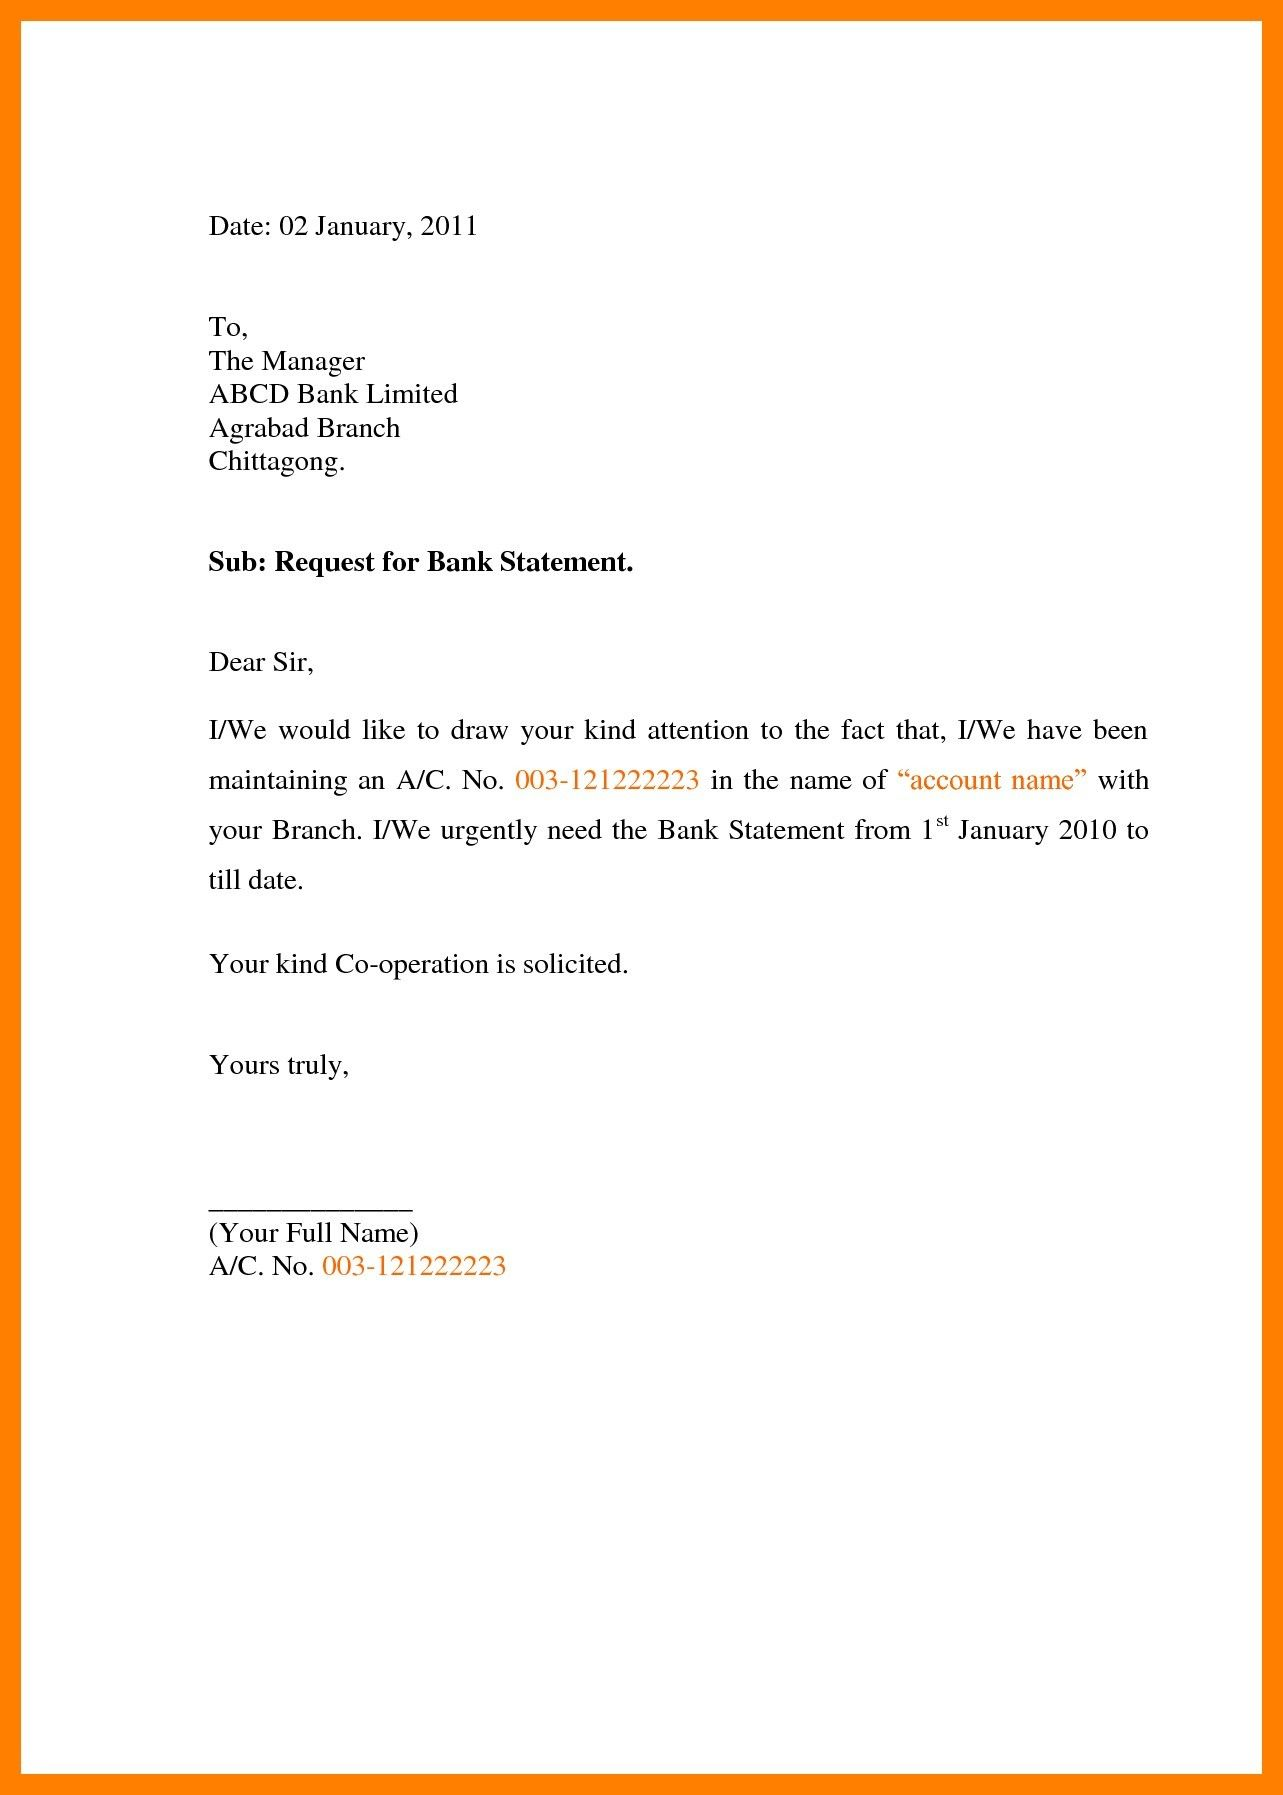 Request letter for bank statement format sample fresh sample bank.